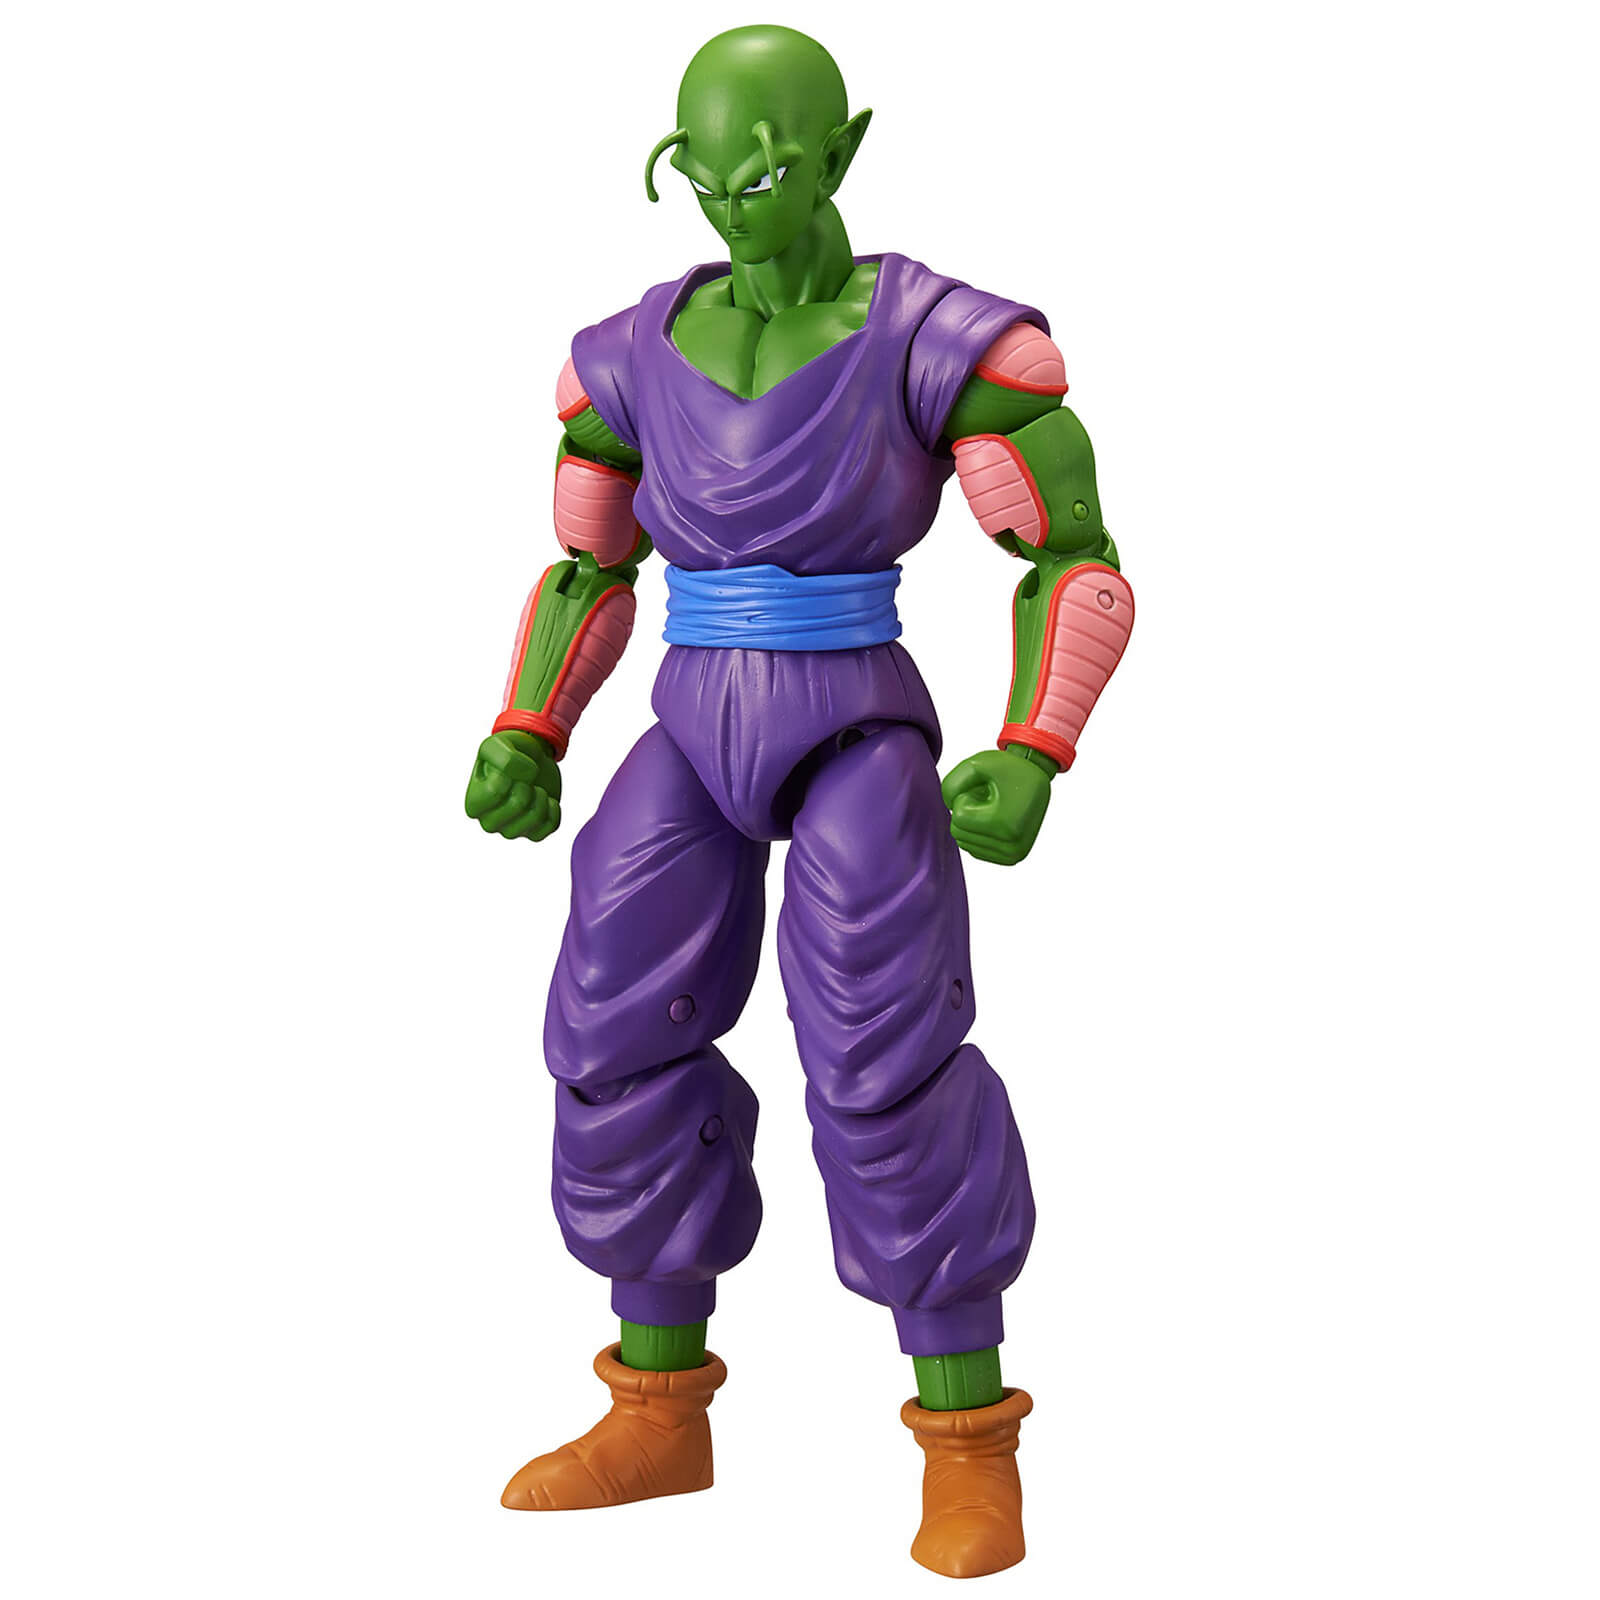 Image of Bandai Dragon Stars DBZ Piccolo Action Figure